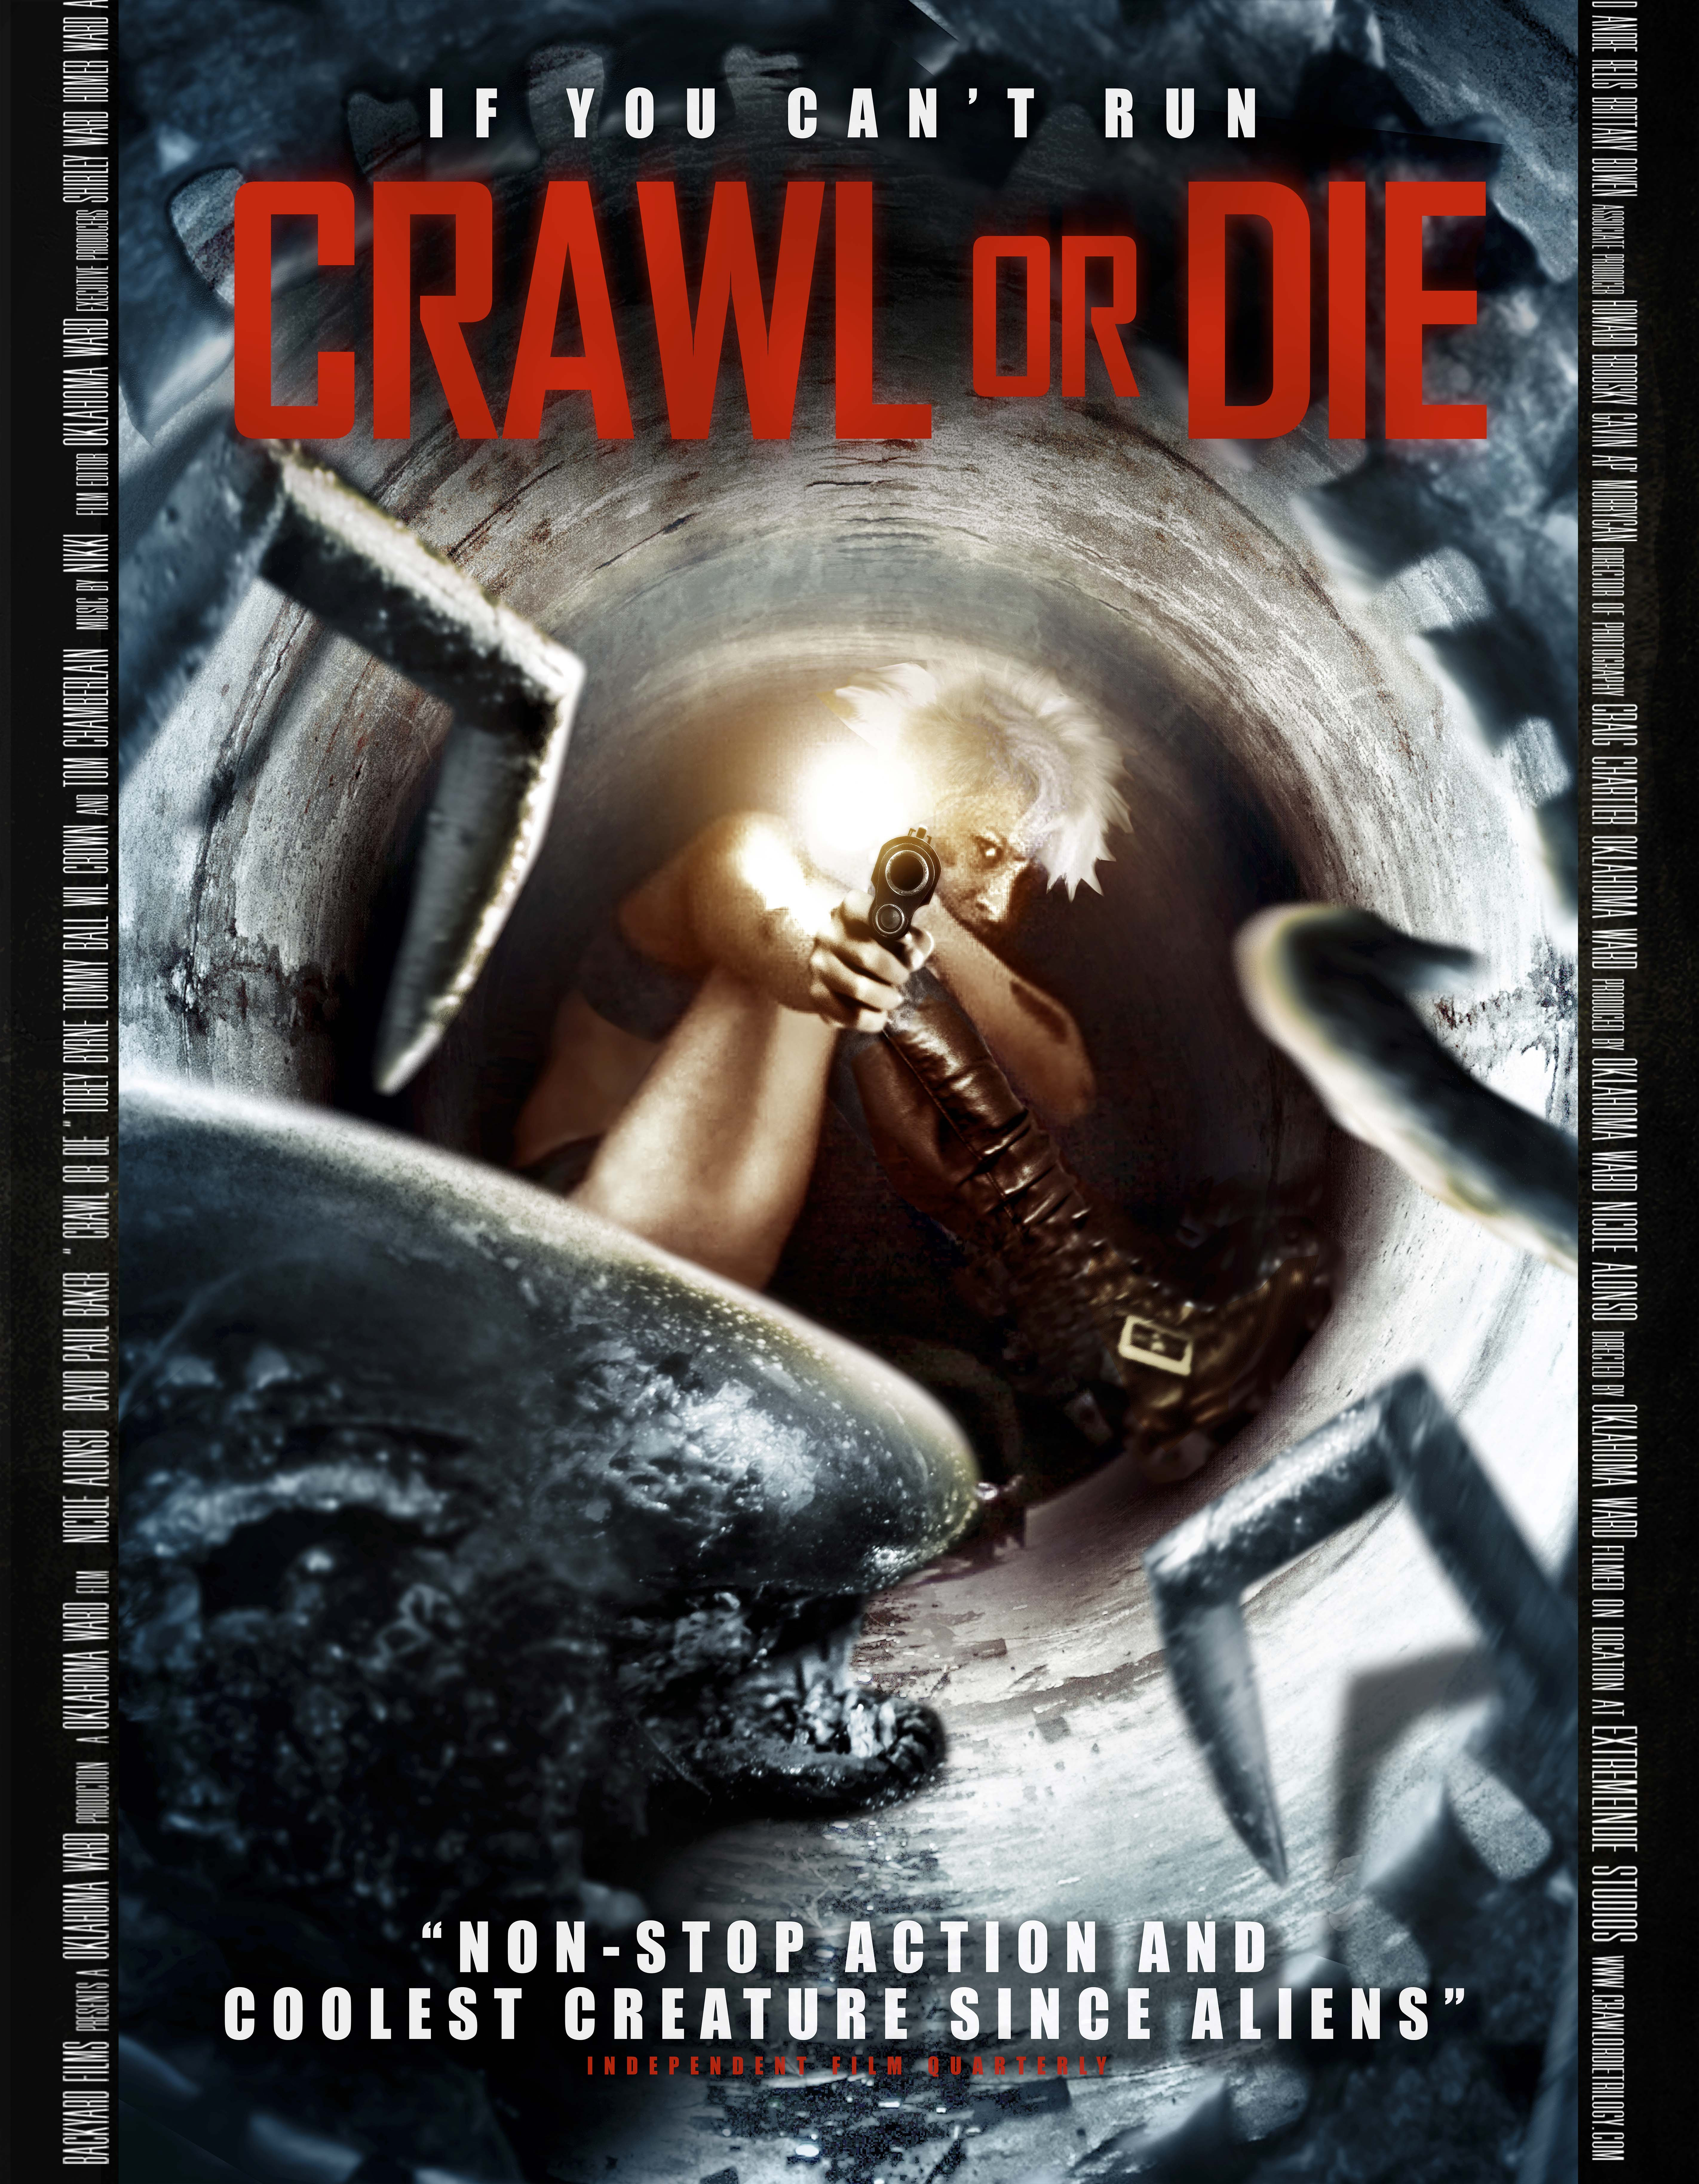 Tightly done with 'Crawl or Die' release – HORROR MOVIES UNCUT